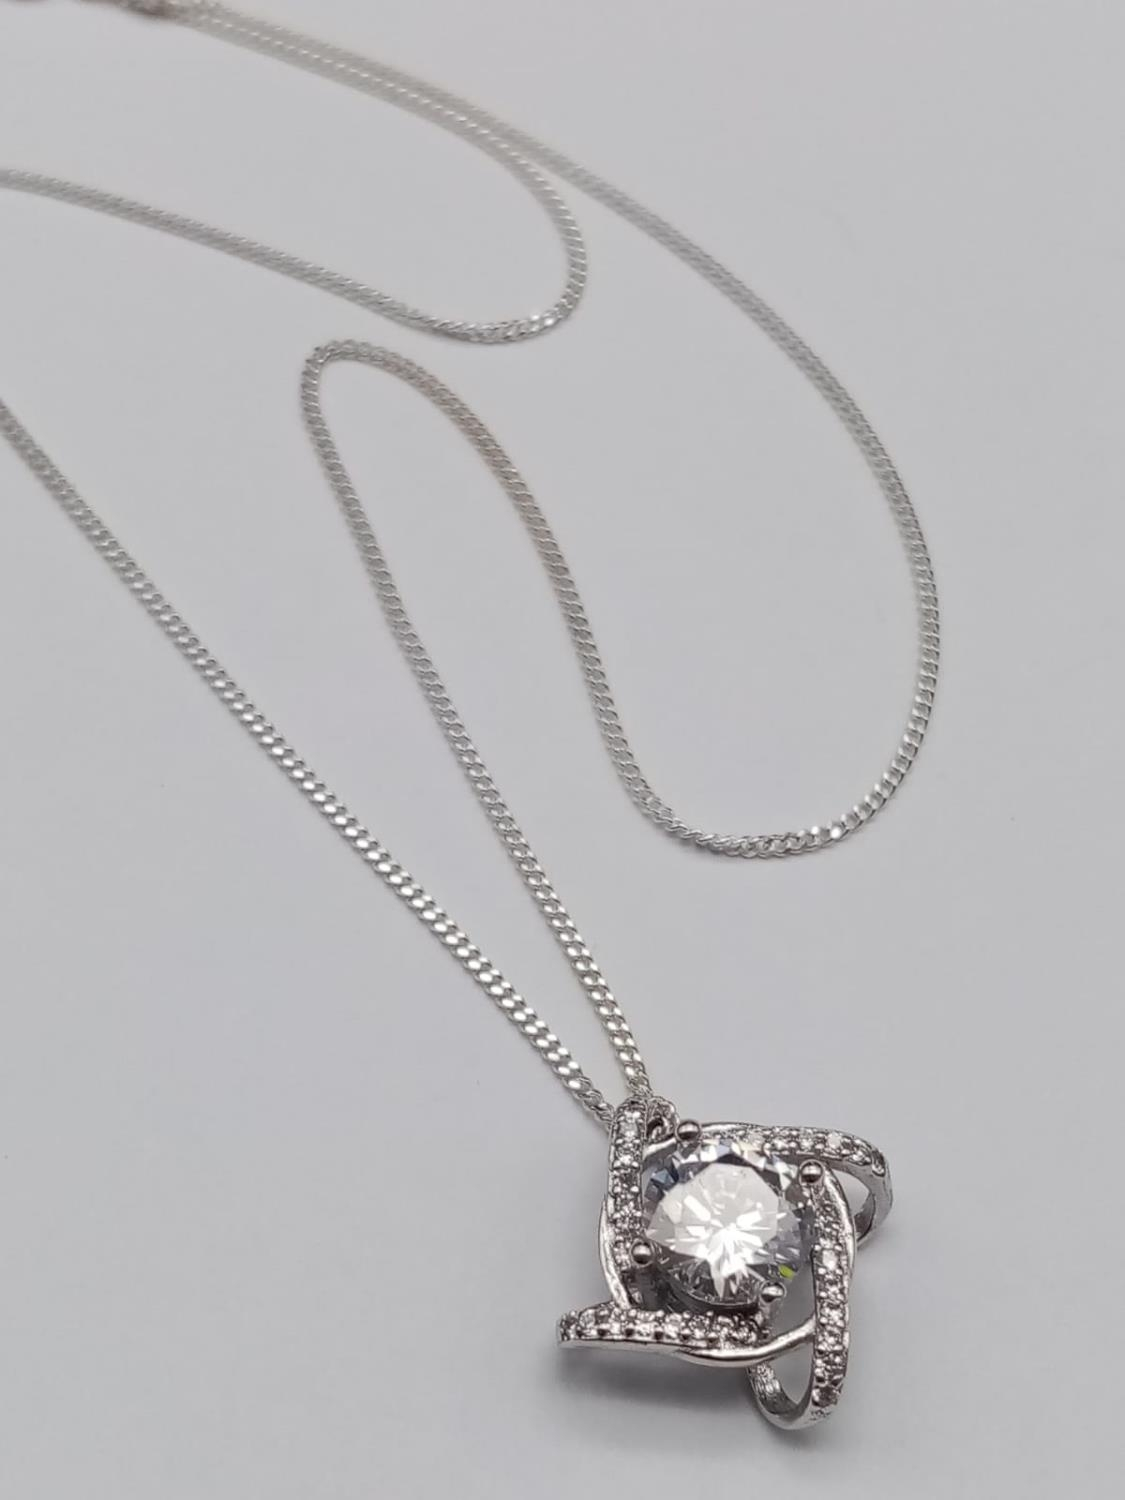 Sterling Silver Stone Set Pendant Necklace on sterling Silver Chain in presentation box. 36cm. 3g